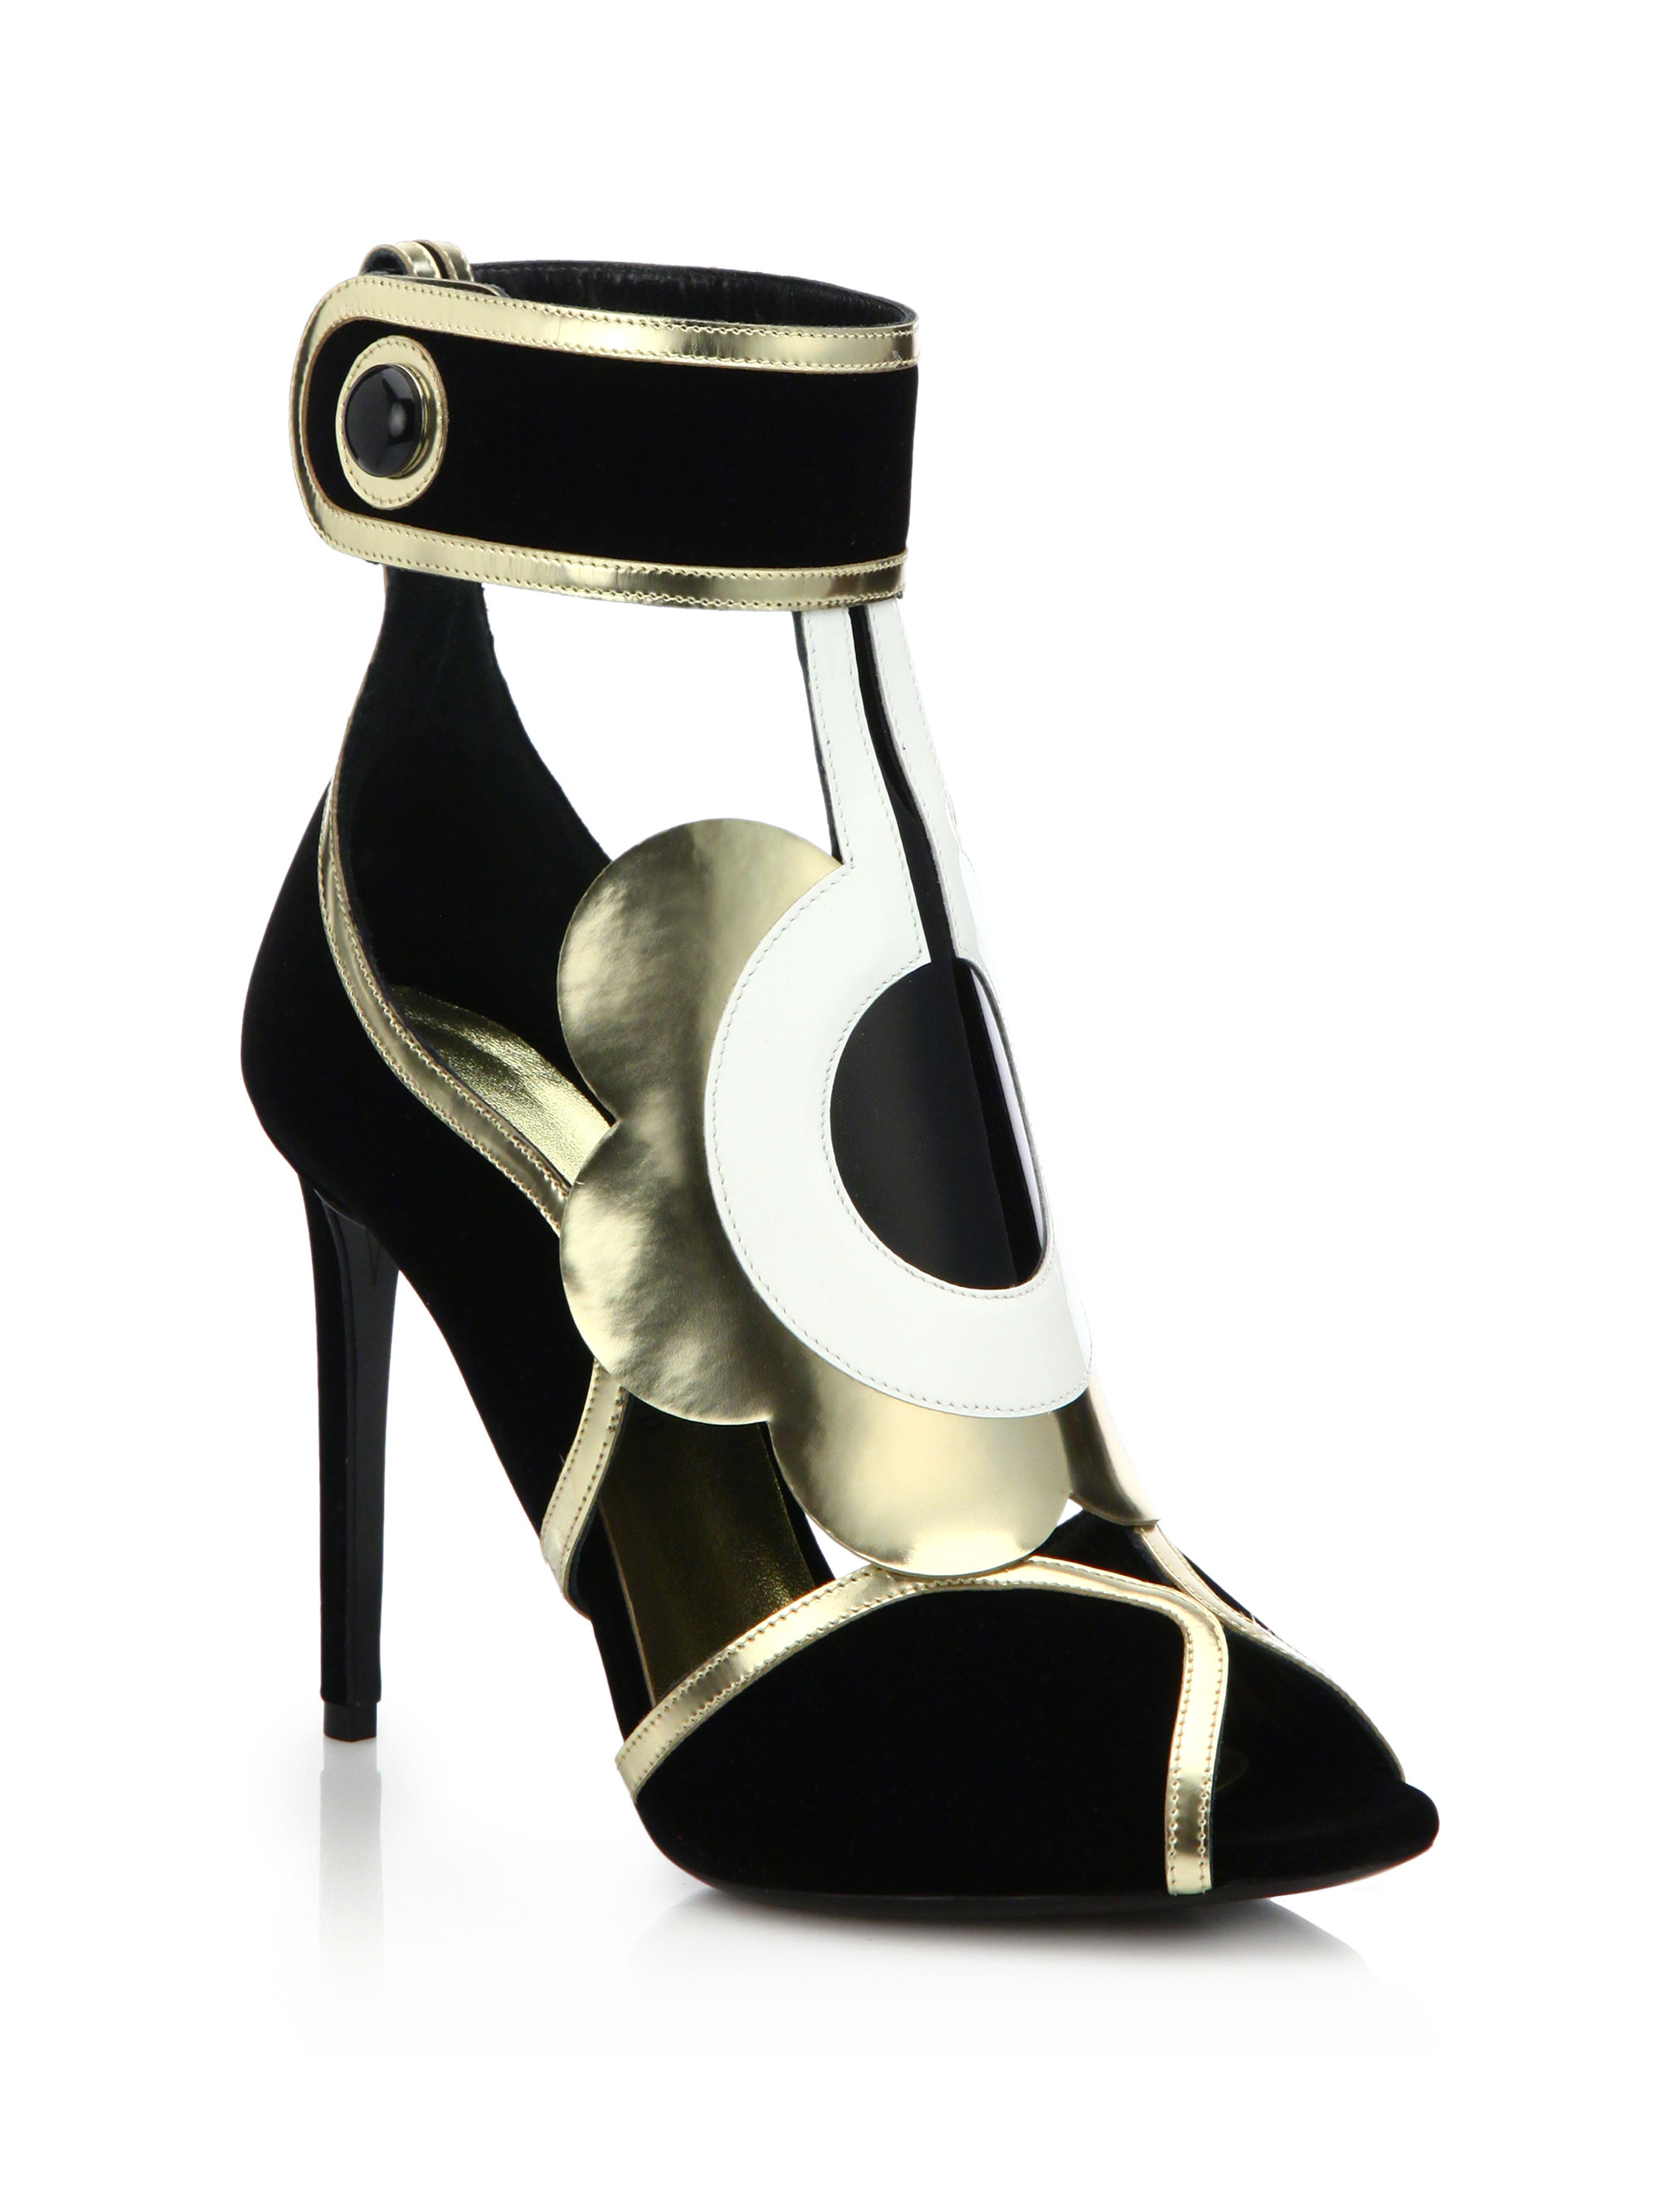 free shipping fashionable low cost online Nicholas Kirkwood Floral Striped Sandals 2014 sale online buy cheap ebay looking for sale online 5Qin5